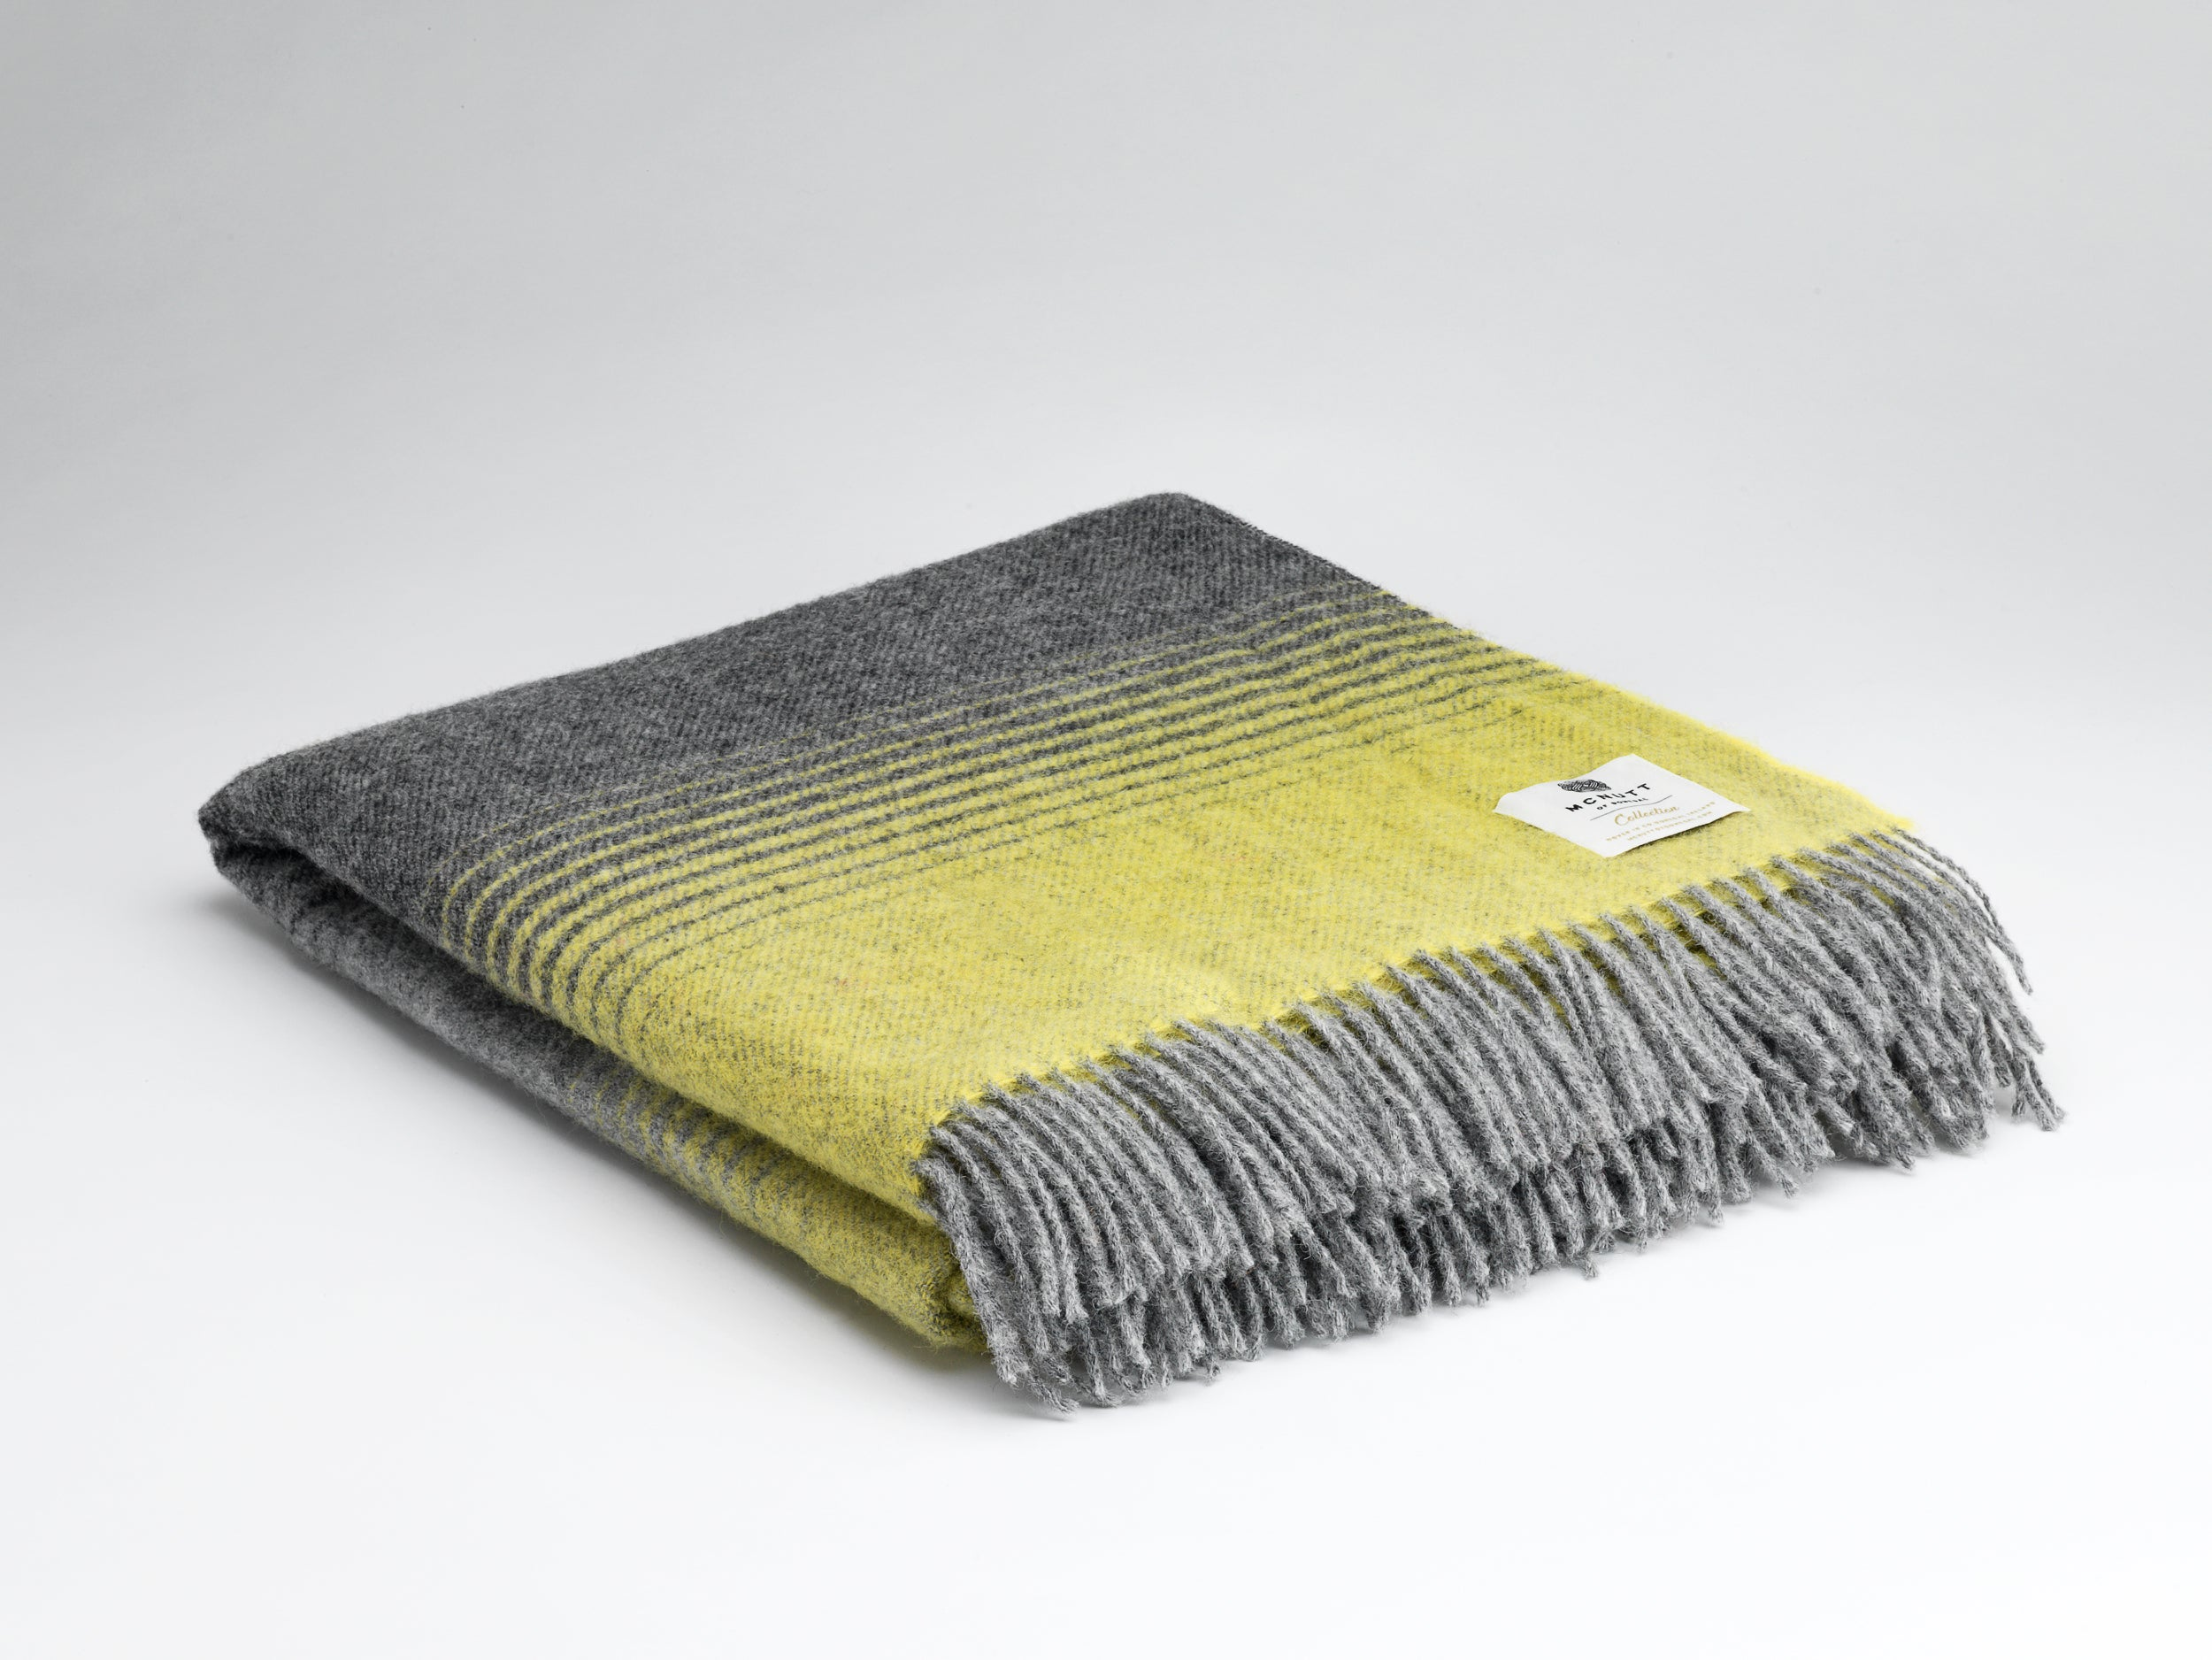 Starry Night Collection Merino Wool Throw Blanket